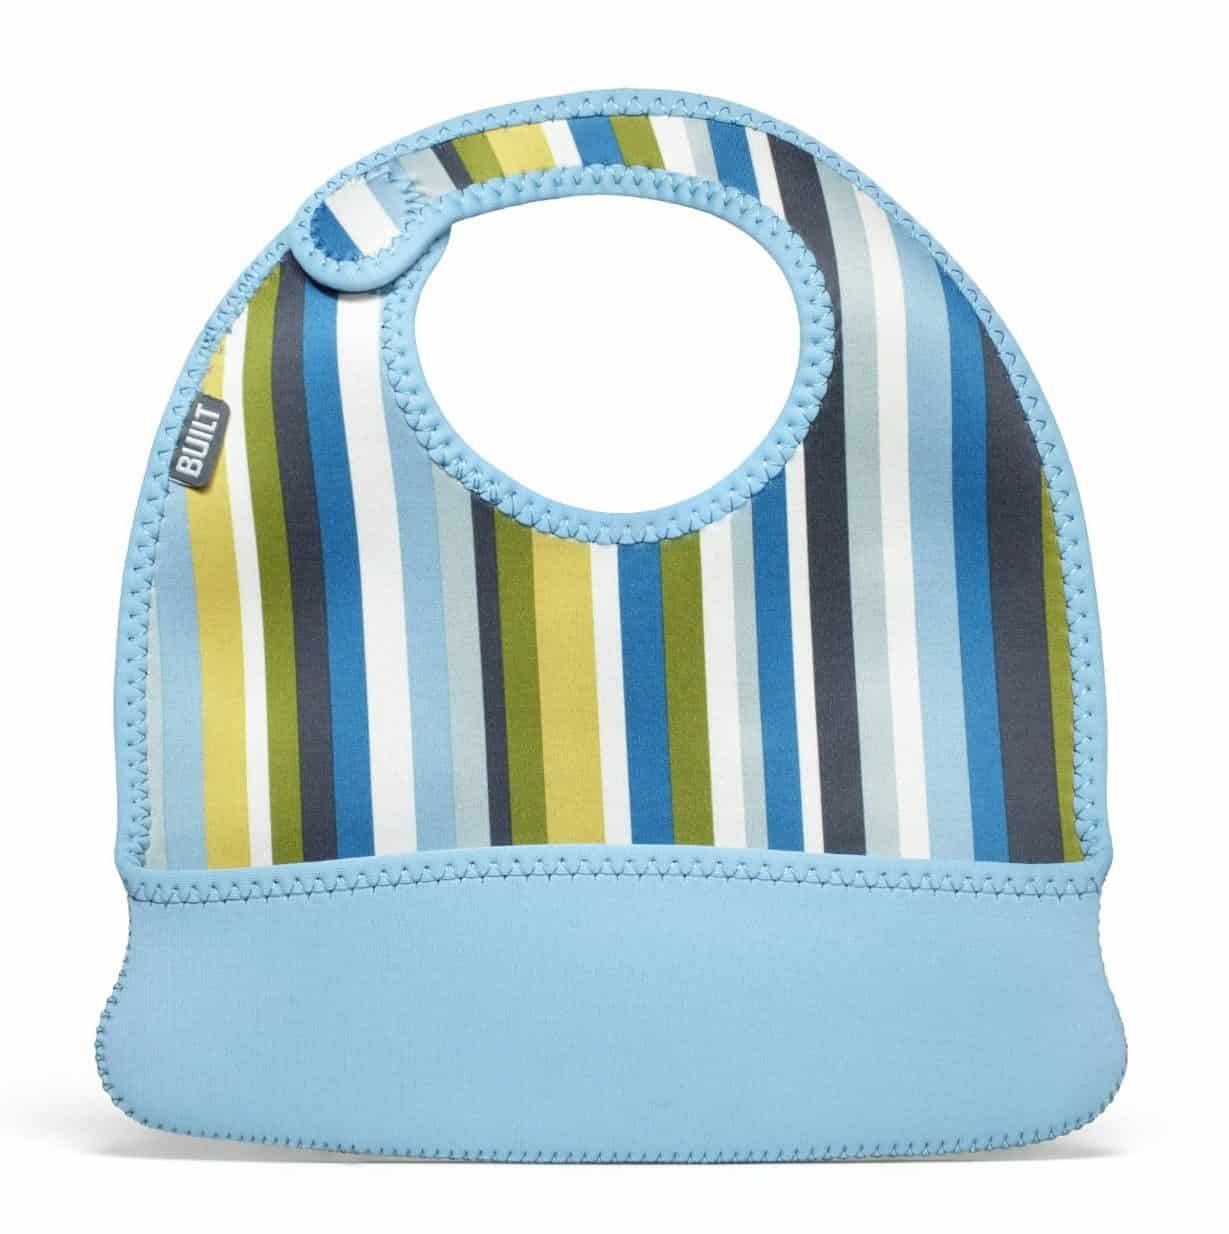 1 x Long Fabric Bib with adjustable body strap in baby pink//blue//yellow